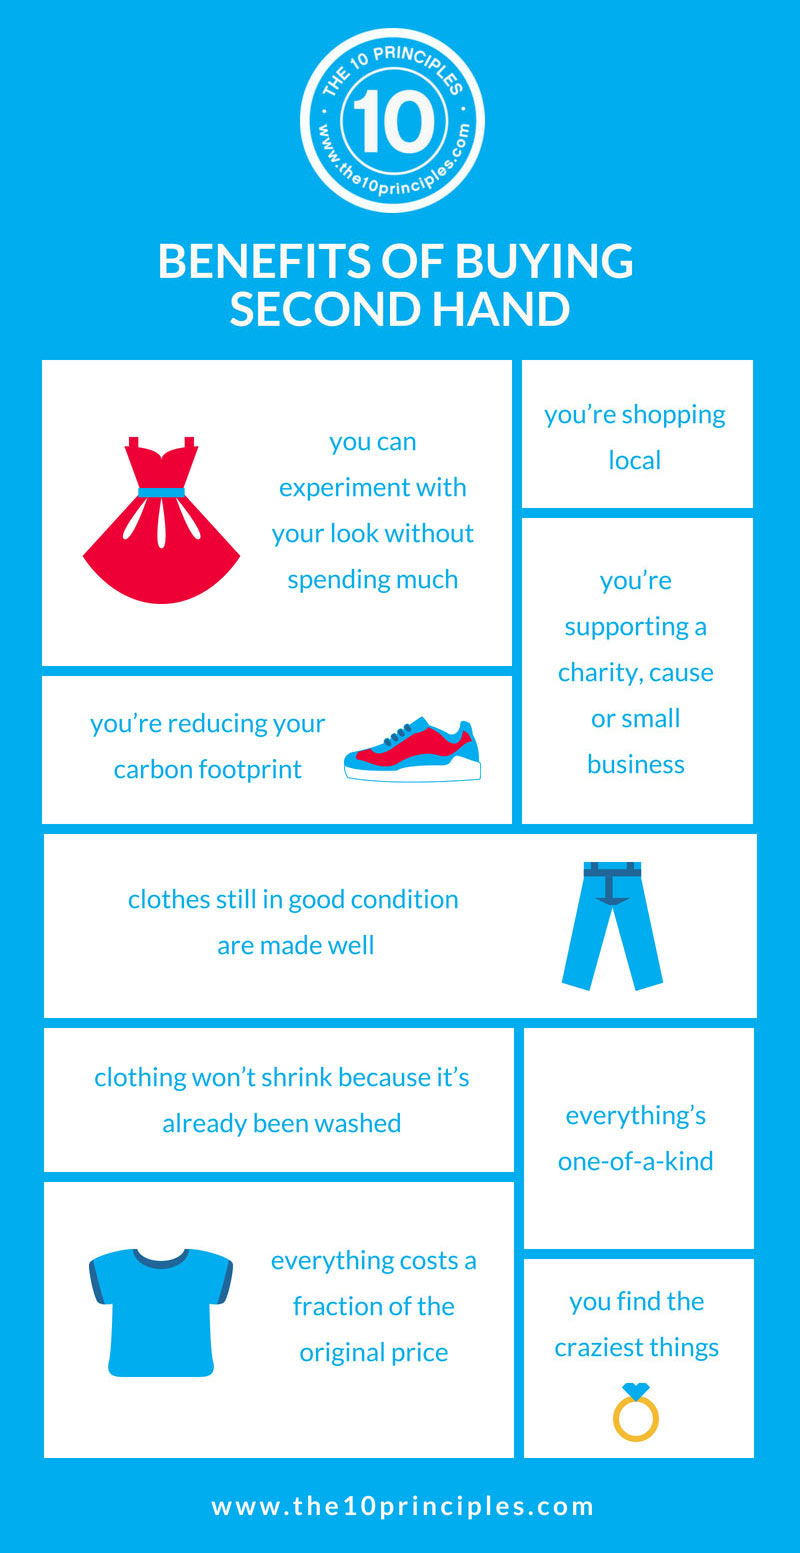 dress up - the benefits of buying second hand